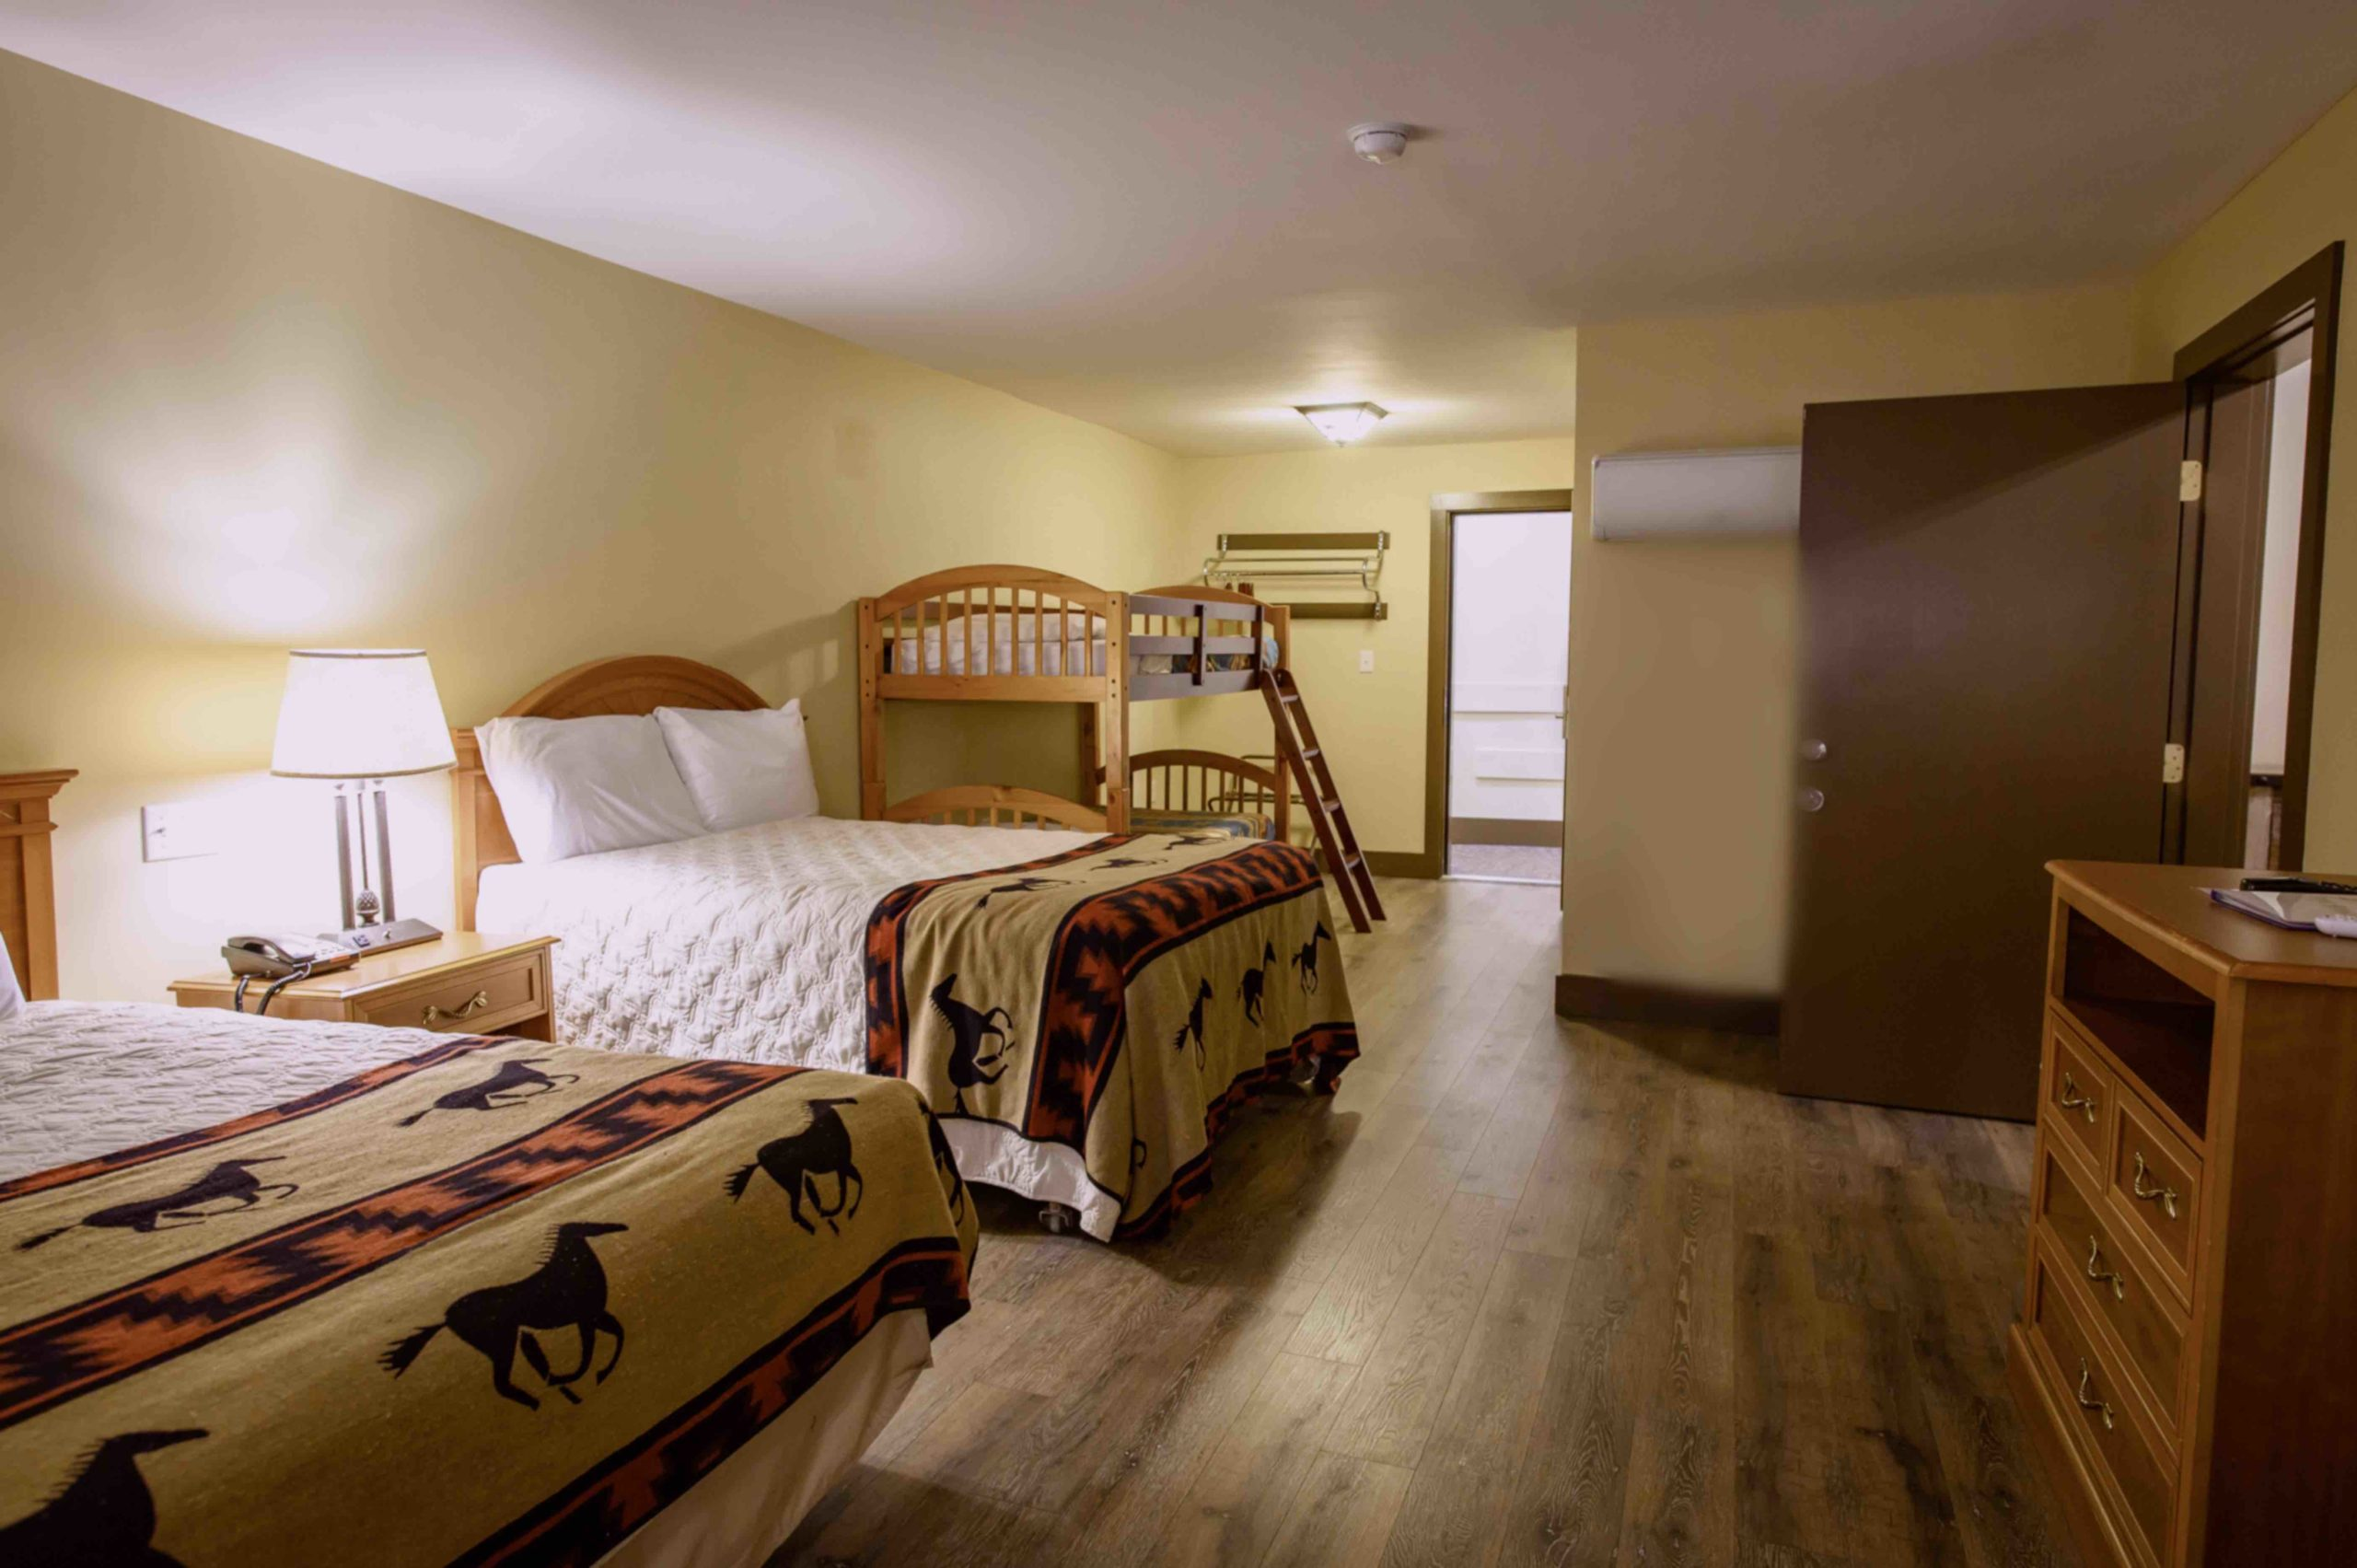 mesa room, two queen beds with horse themed blankets, door entrance to bathroom and to adjoinging room, wooden floors